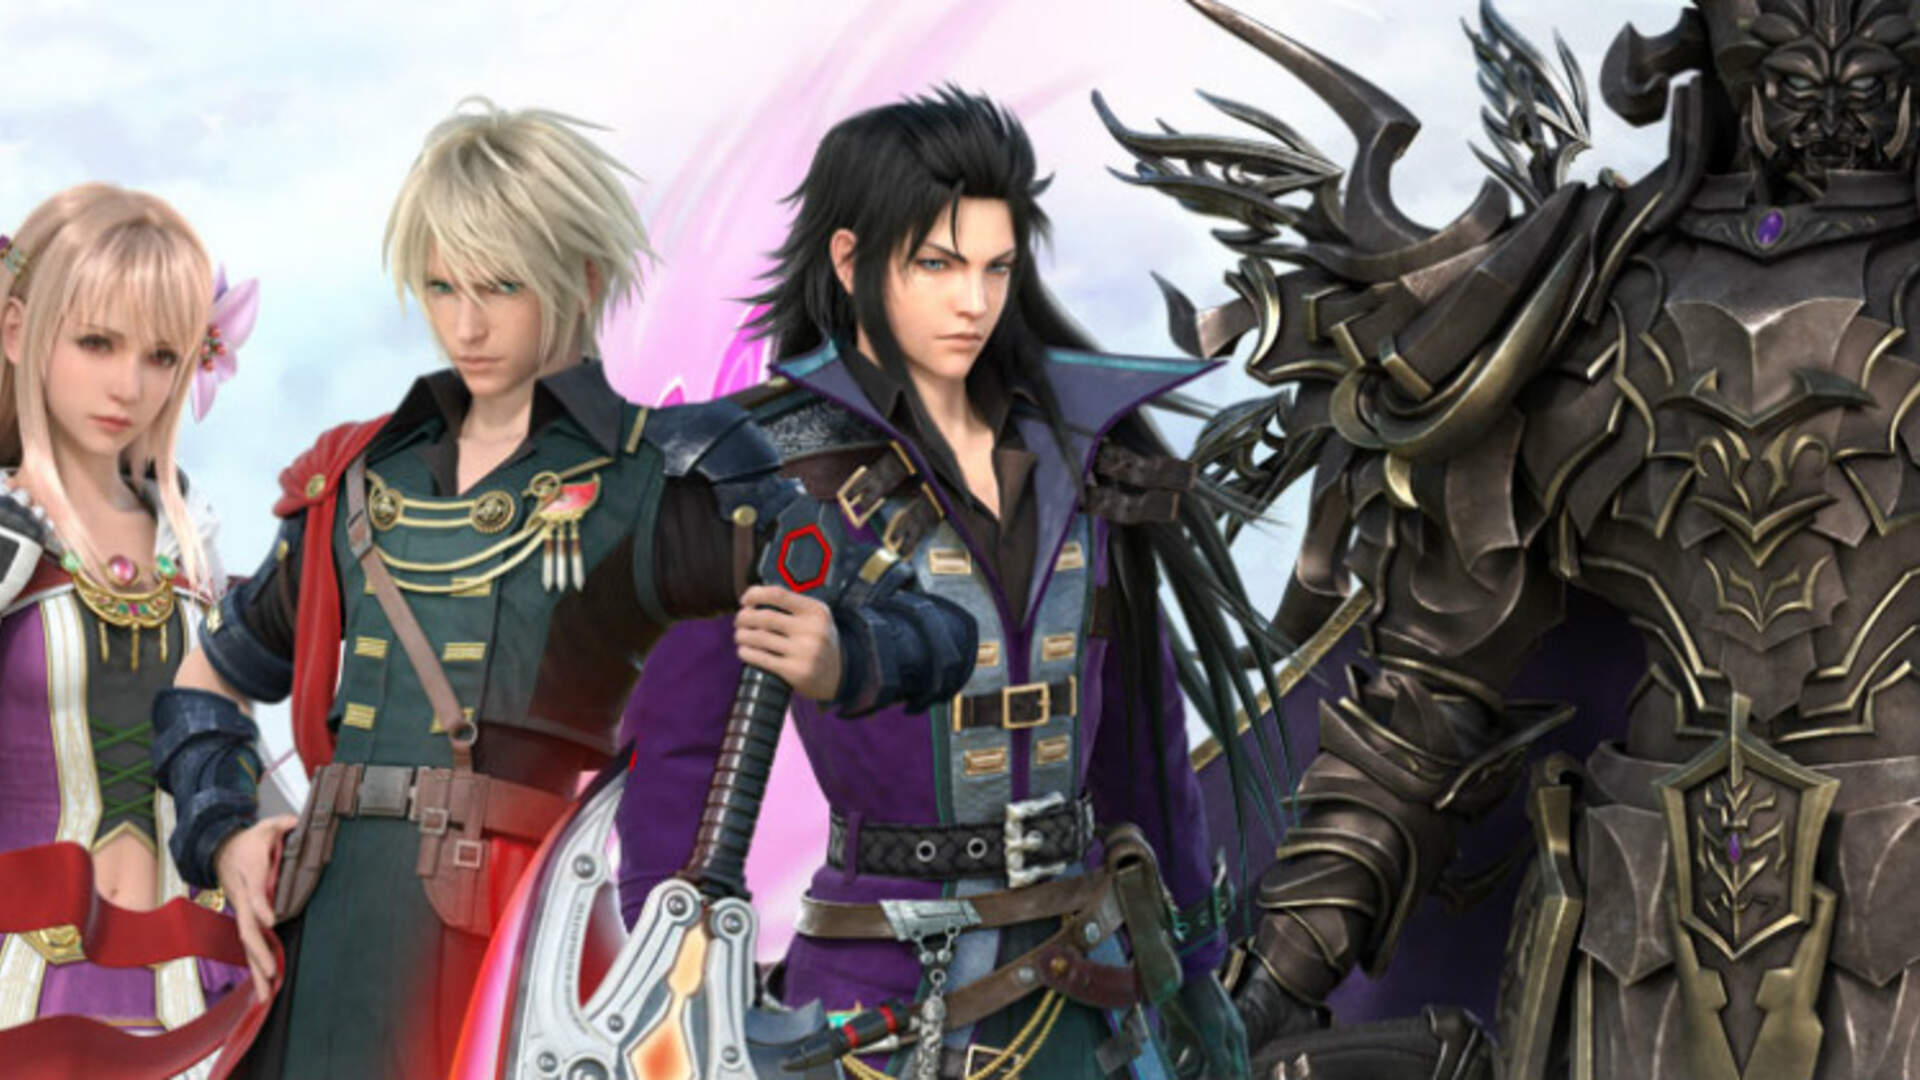 Final Fantasy: Brave Exvius Launches Worldwide On iOS and Android